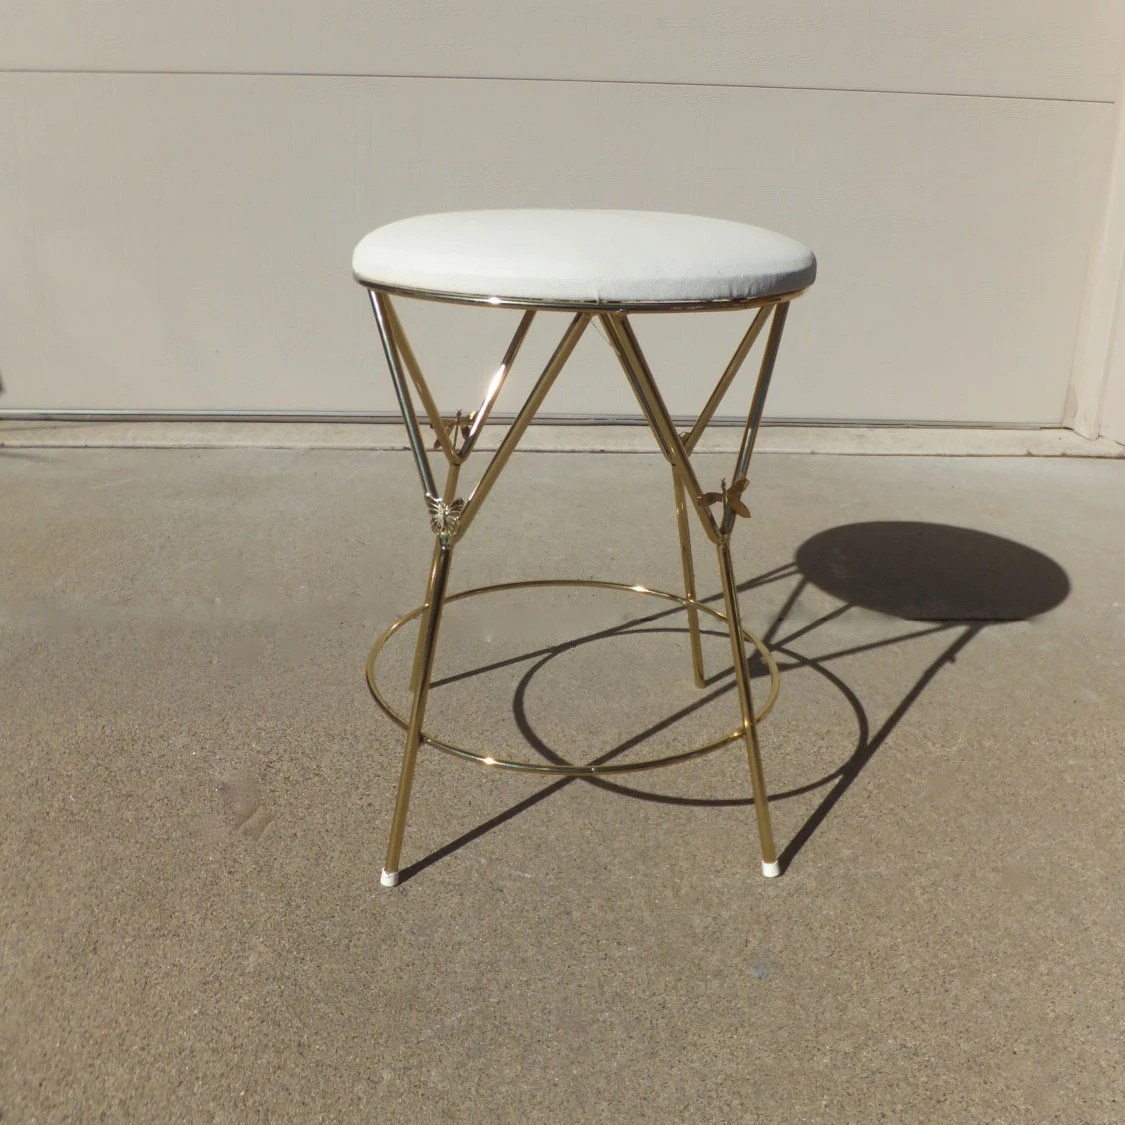 Modern Vanity Chair Vintage Vanity Stool Hollywood Regencyvanity Chair Gold